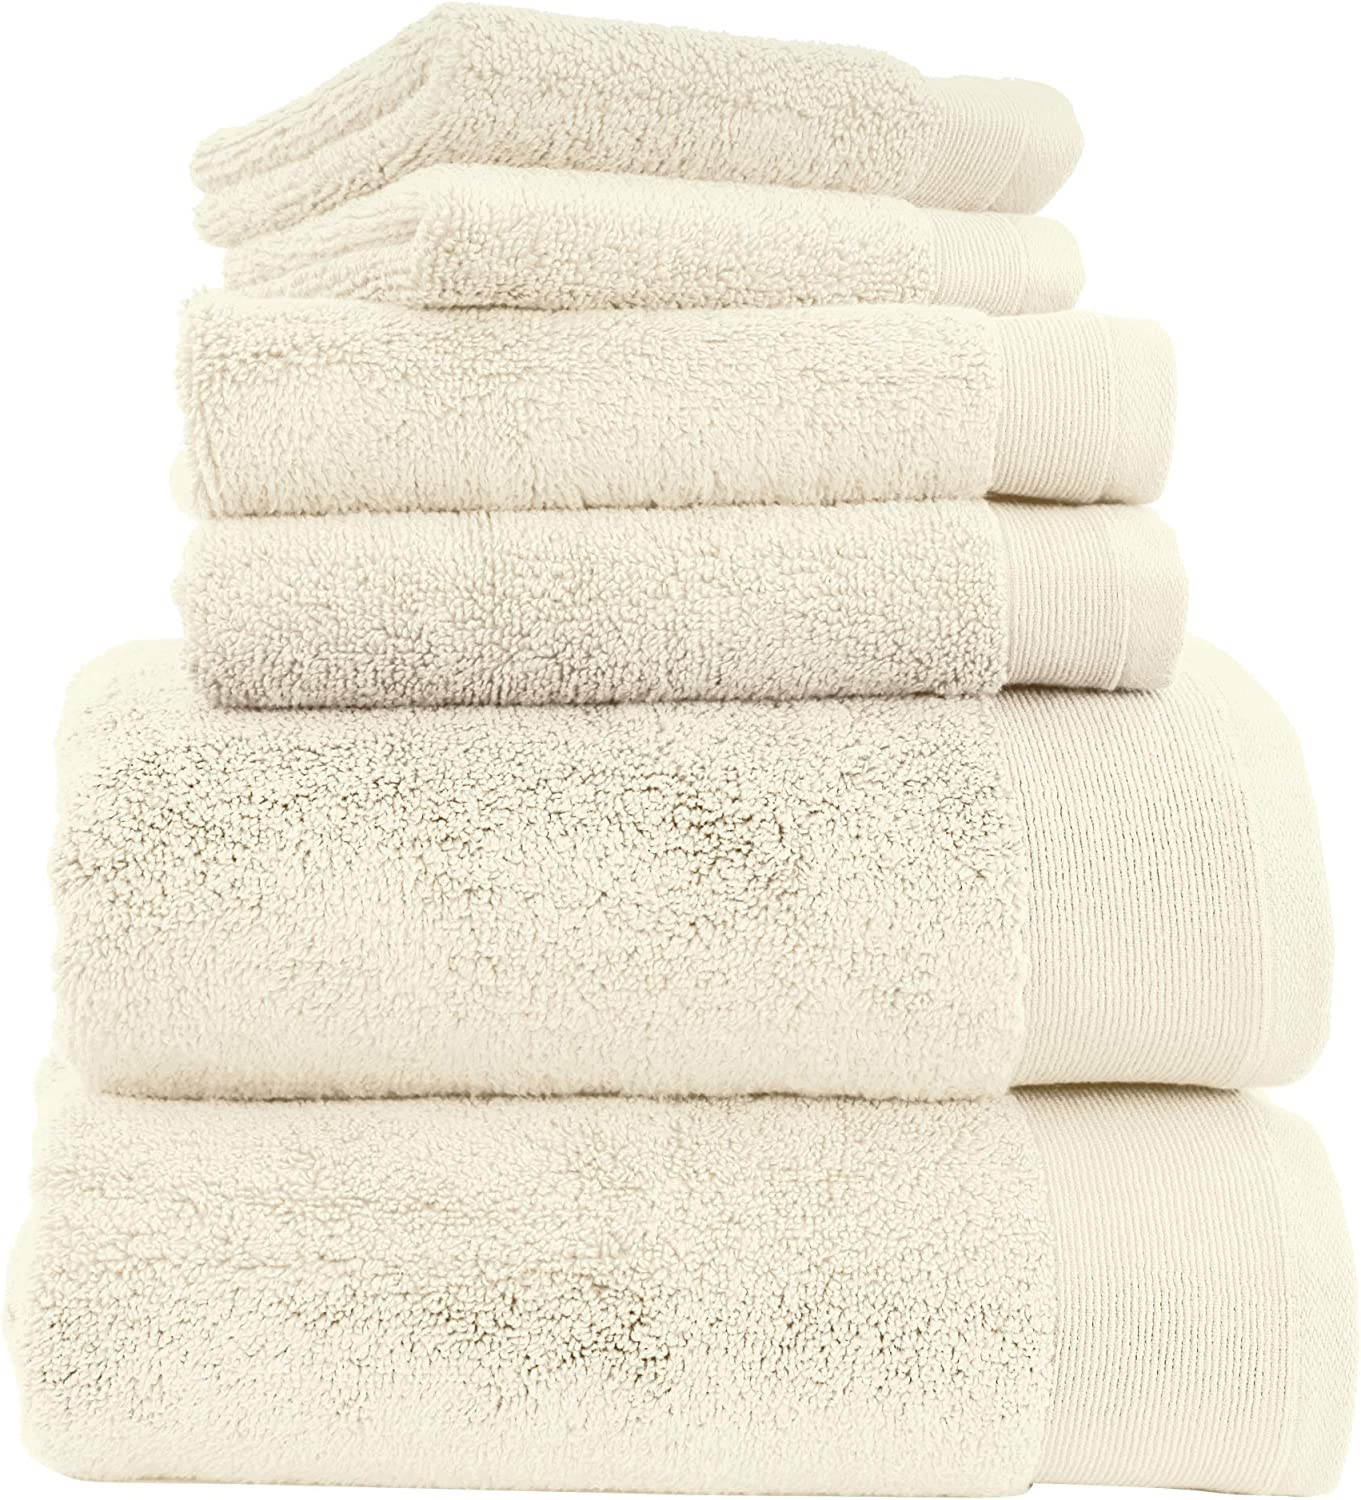 Quick Dry /& Highly Absorbent 100/% Cotton Luxury Bath Sheet No Lint White Ideal for Tall//Big Body Types Extra Large Size 1 Piece Hotel Quality Bathroom Towel Very Soft /& Fluffy 84 x 178 cm